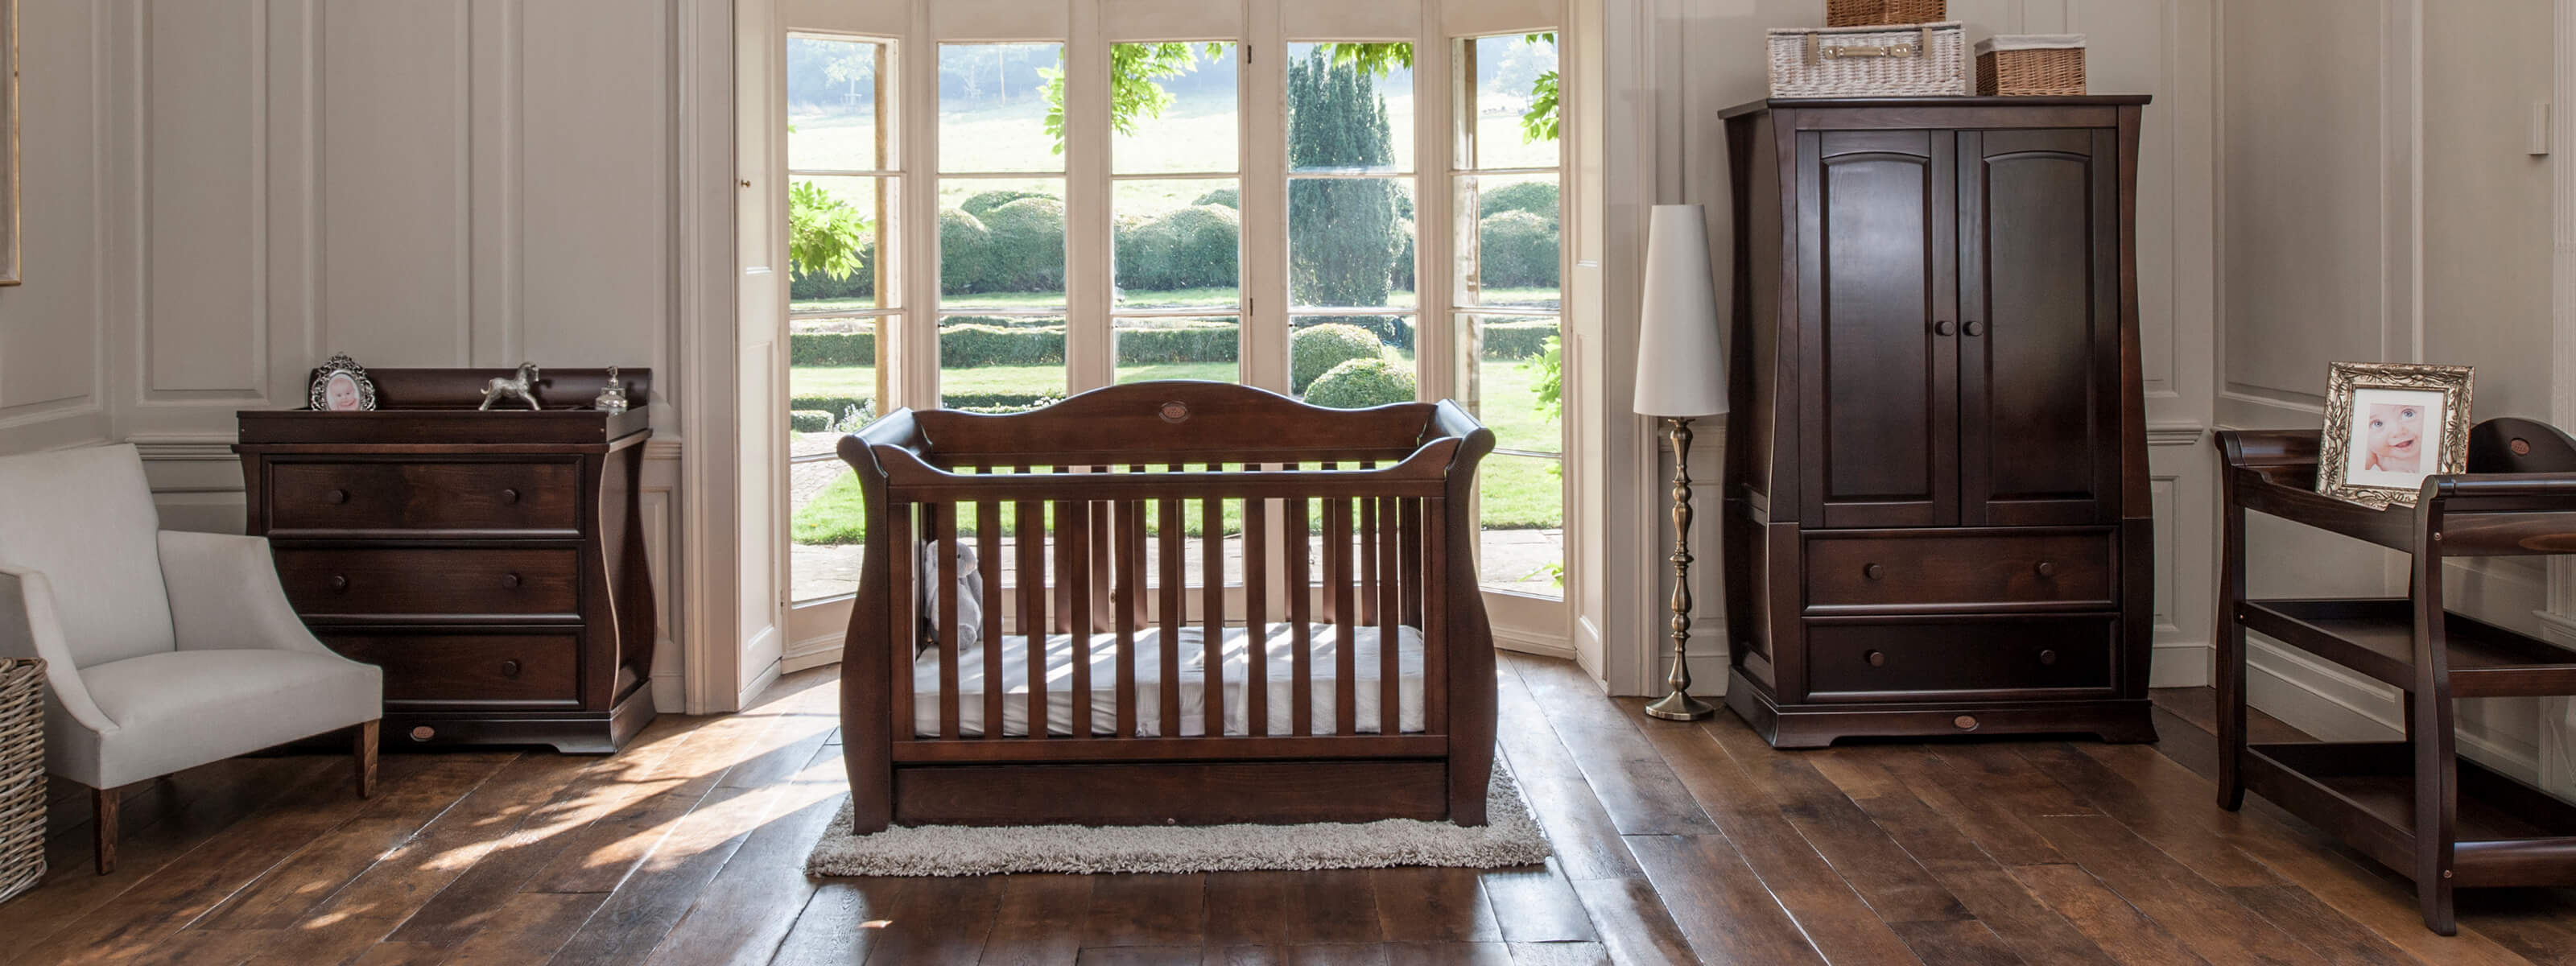 Product_Page_Lifestyle_1600_x_600_Sleigh_Royale_3_Piece_Room_Set_English_Oak__FORWEB__2x